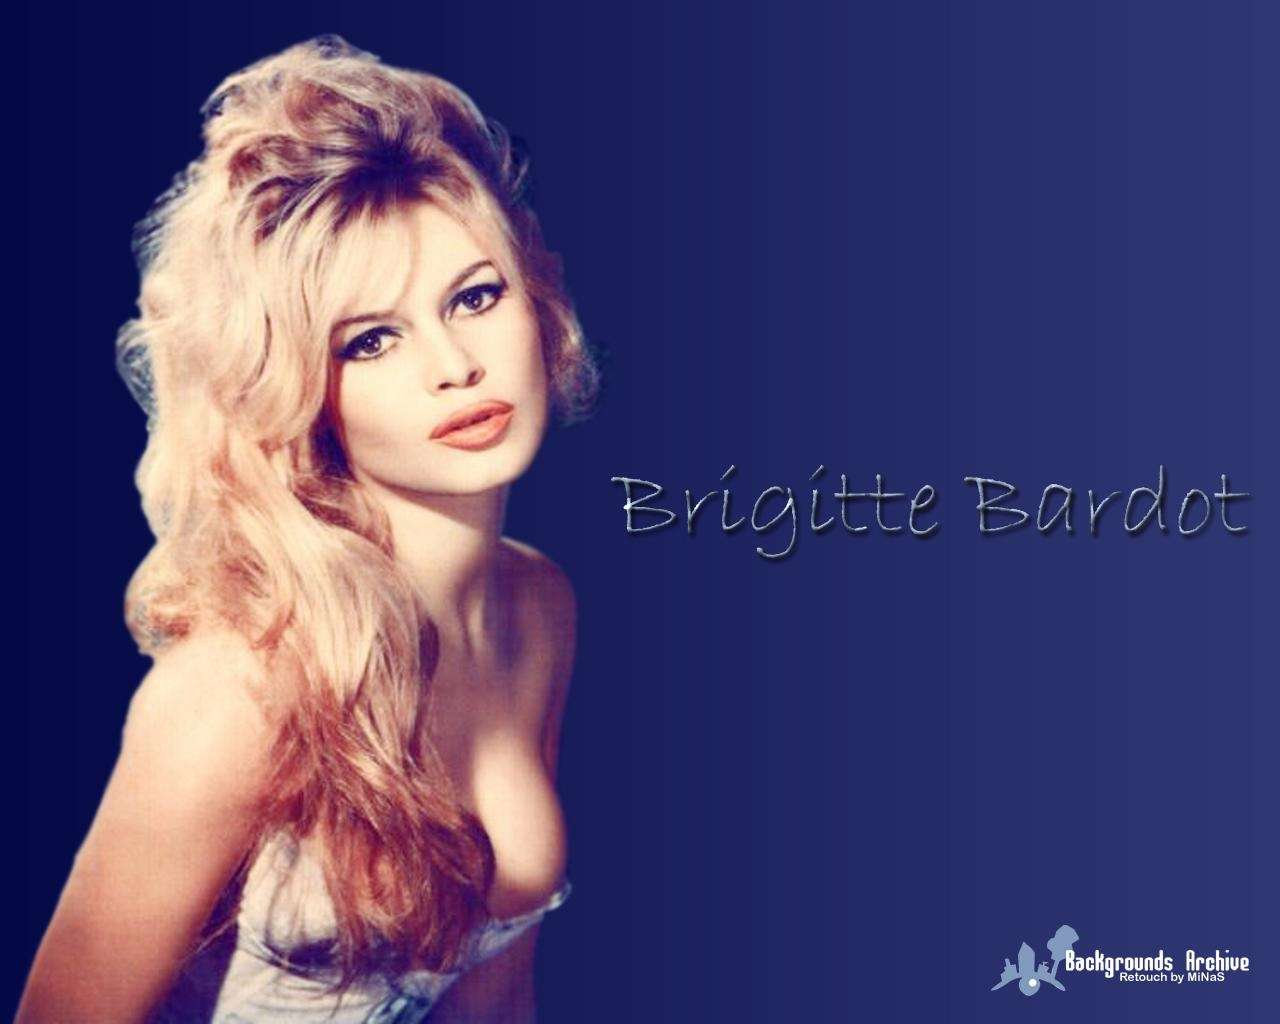 Funny Car Wallpapers Free Brigitte Bardot Wallpaper Hd Wallpapers